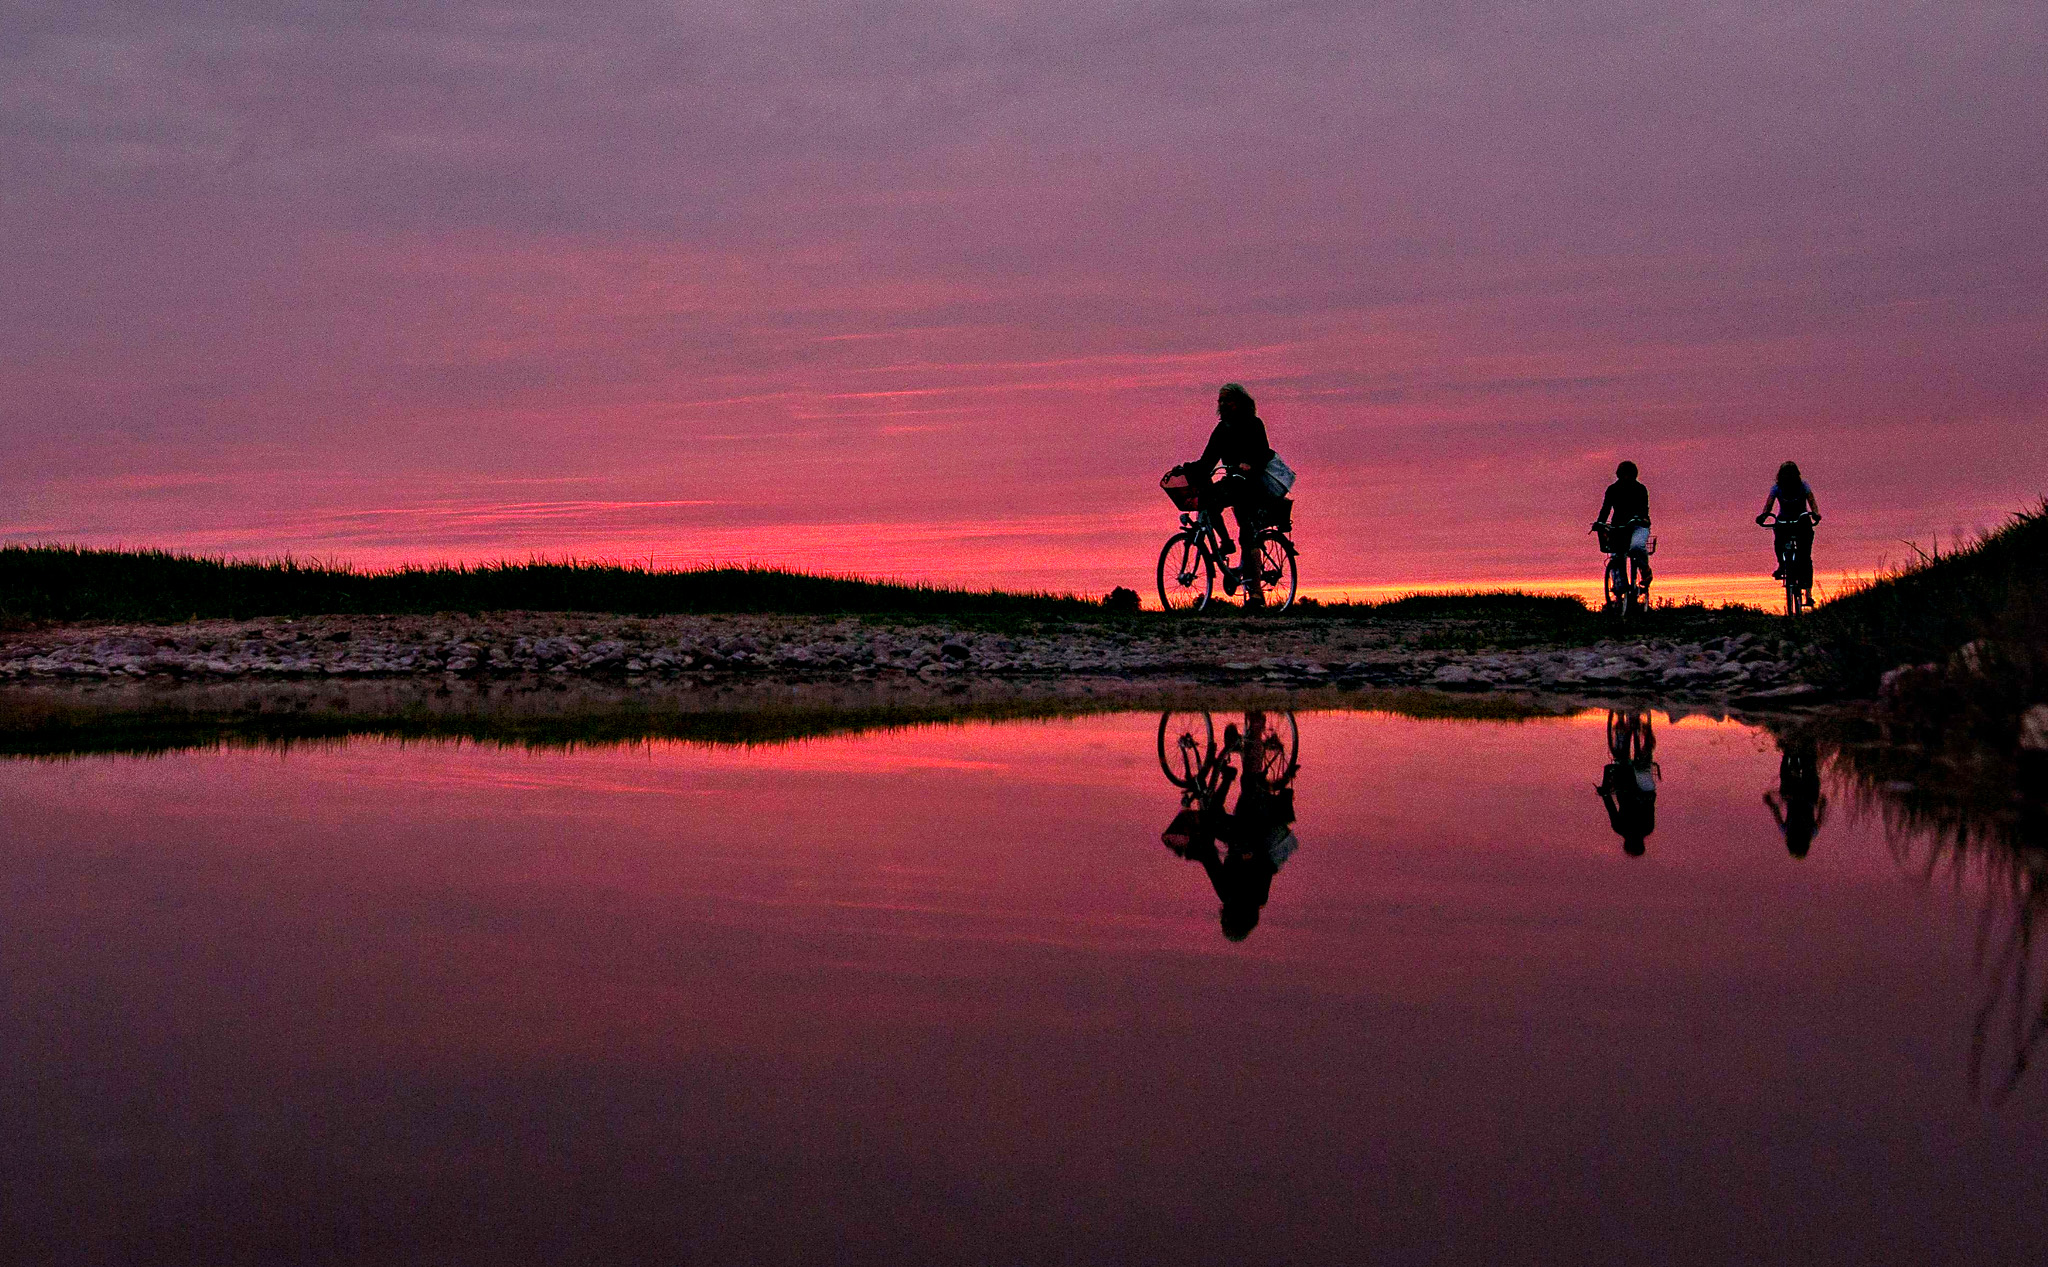 Cyclists reflect in a puddle and silhouette against the sky as sun sets near Guelpe, northeastern Germany